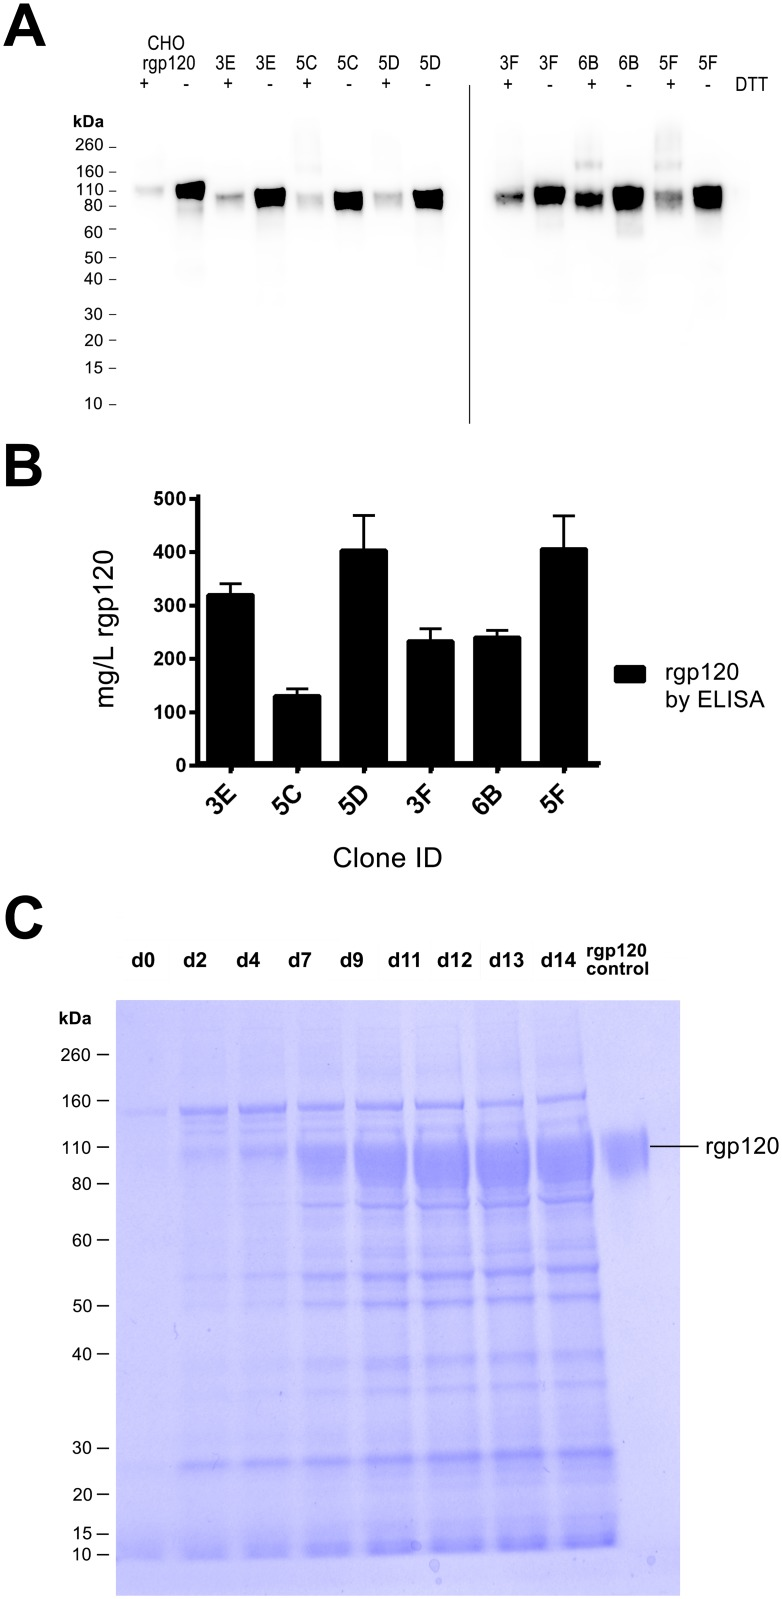 Analysis of A244_N332-rgp120 secreted from stable MGAT1 - CHO cell lines. Six stable MGAT1 - CHO cell lines identified with the ClonePix2 were selected as potential substrates for HIV vaccine production. (A) Immunoblot of affinity-purified rgp120 (50 ng per lane) produced by each of six A244_N332-rgp120 cell lines: 3E, 5C, 5D, 3F, 6B, and 5F. Purified A244_N332-rgp120 produced in normal CHO DG44 cells (692) was shown for purpose of comparison. (B) Comparison of A244_N332-rgp120 protein yields as determined by ELISA from the six MGAT1 - CHO cell lines. ( C) SDS PAGE of rgp120 produced by the 5F MGAT1 - CHO cell line. Supernatant samples (10 μ l per lane) collected over the time course of the culture were electrophoresed on a 4–12% NuPage PAGE SDS gel in MOPS buffer (Thermo Scientific, Waltham, MA). The gel was stained with Simply Blue (Thermo Scientific, Waltham, MA) and visualized using an Innotech FluoChem2 system (Genetic Technologies, Grover, MO).